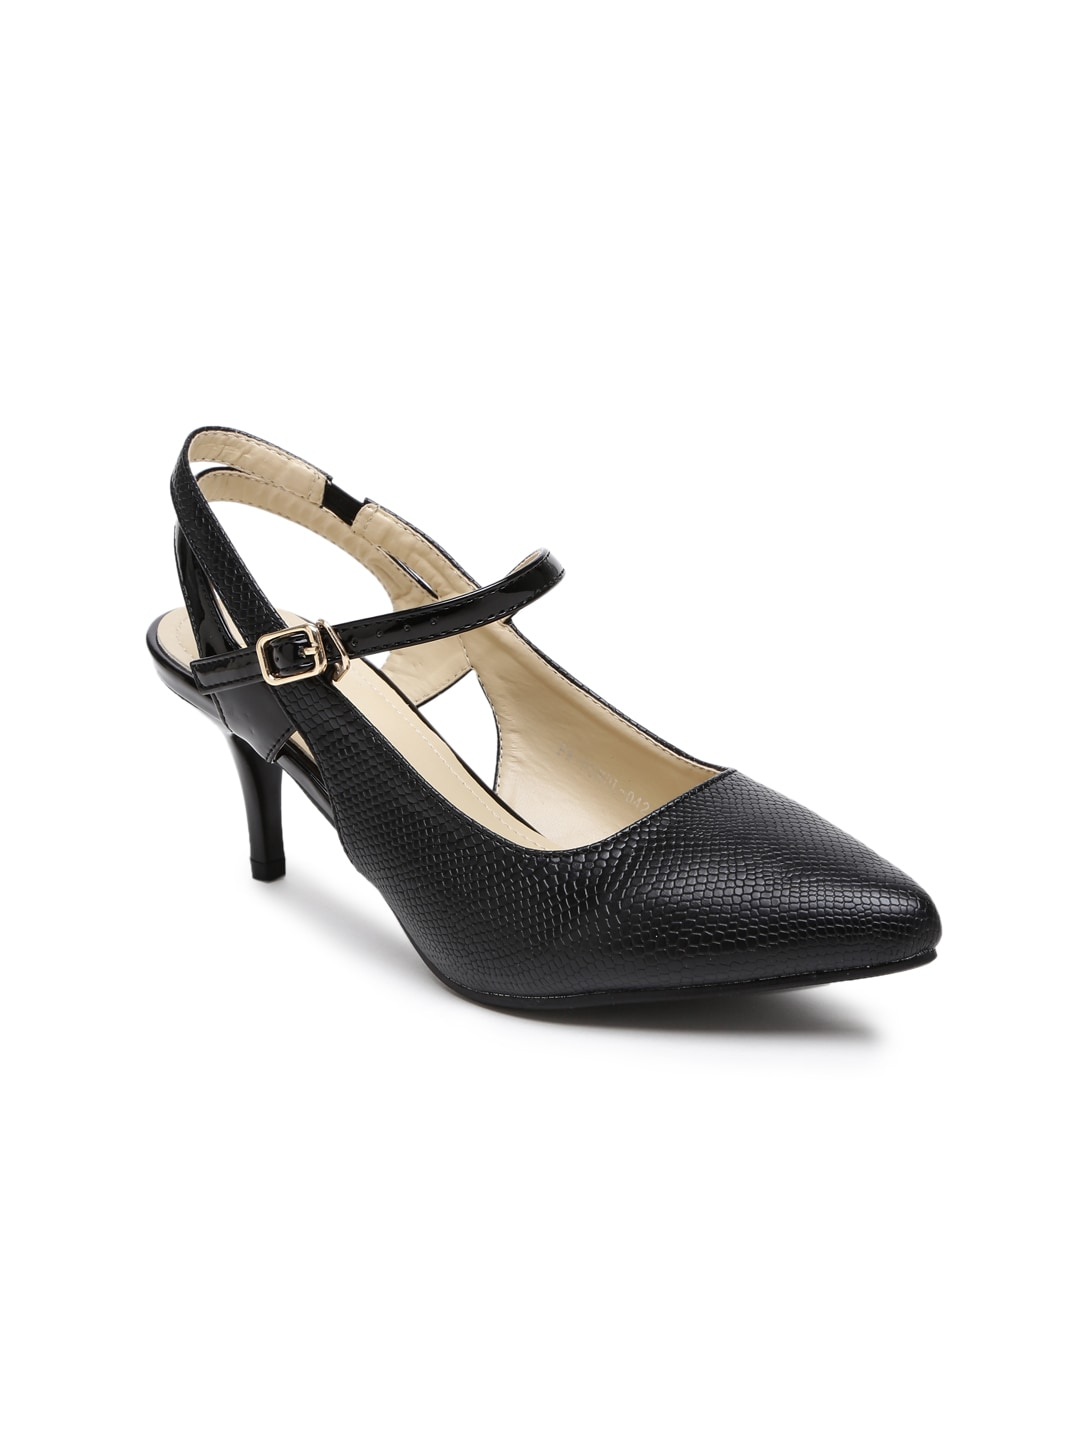 5be7fd7777f Toe Shoes - Buy Toe Shoes online in India